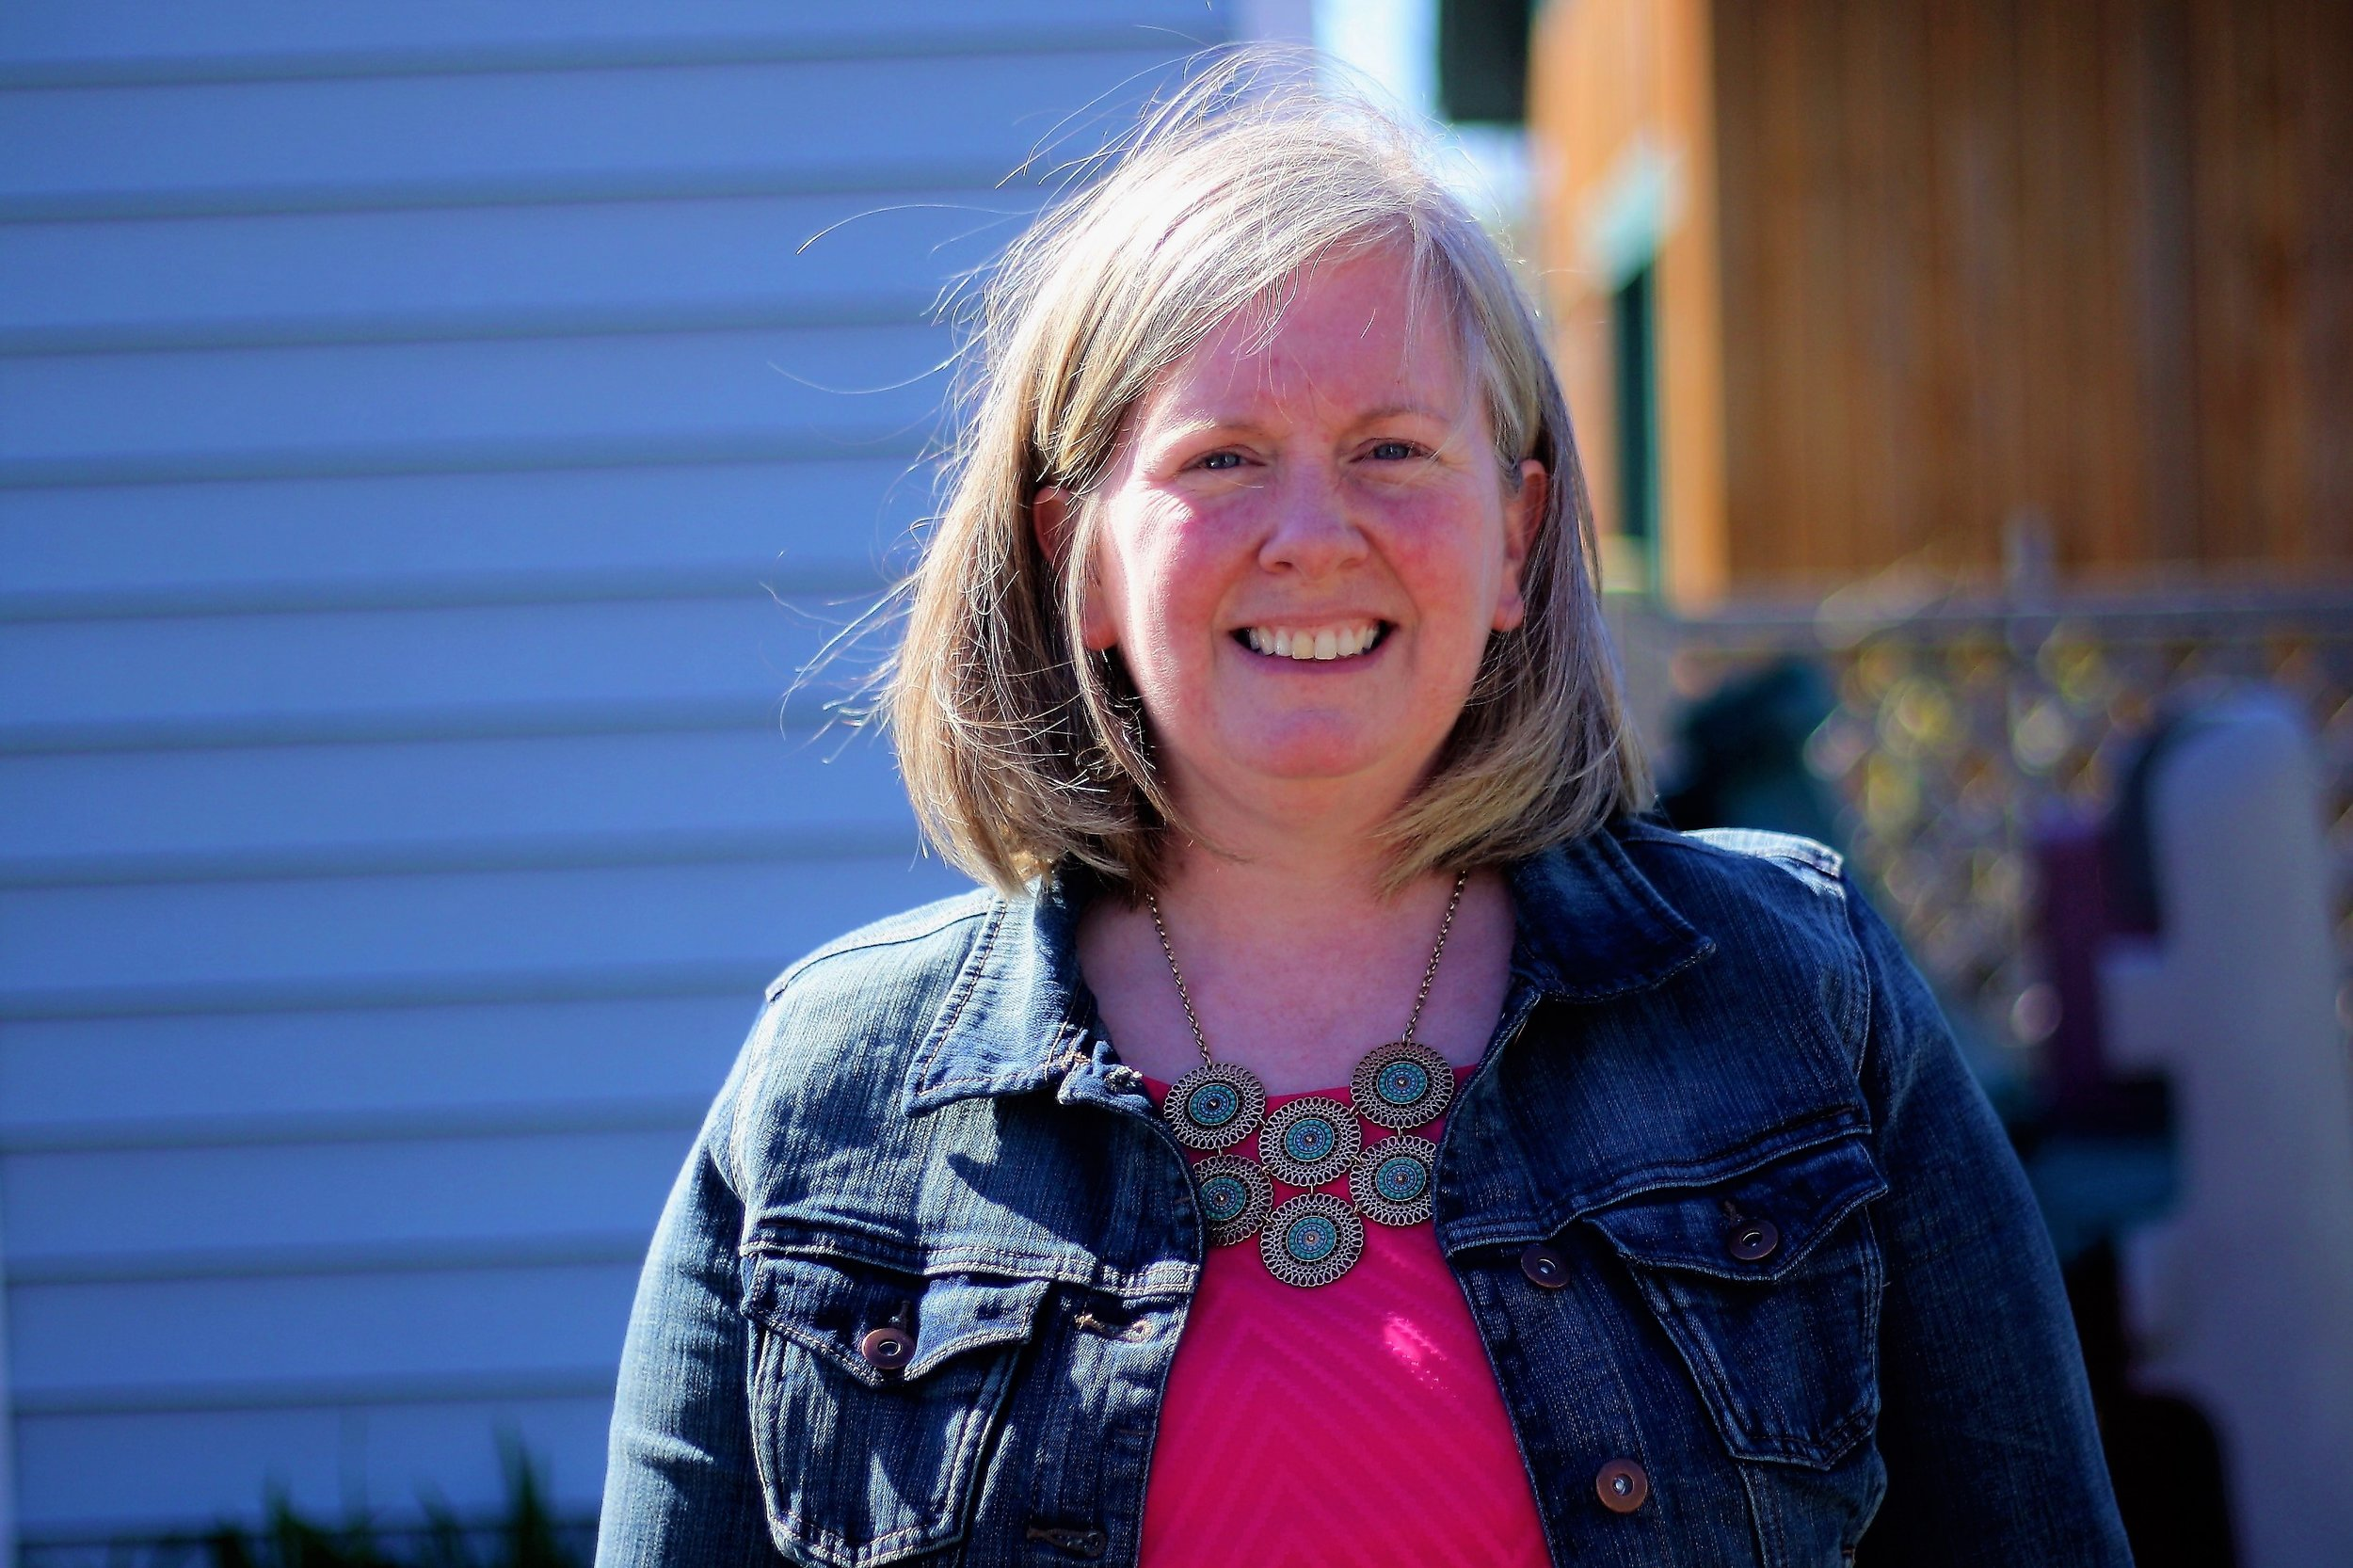 Angie Murphy is from Saint John, NB Canada and is an active volunteer in this area of ministry.  Read more....